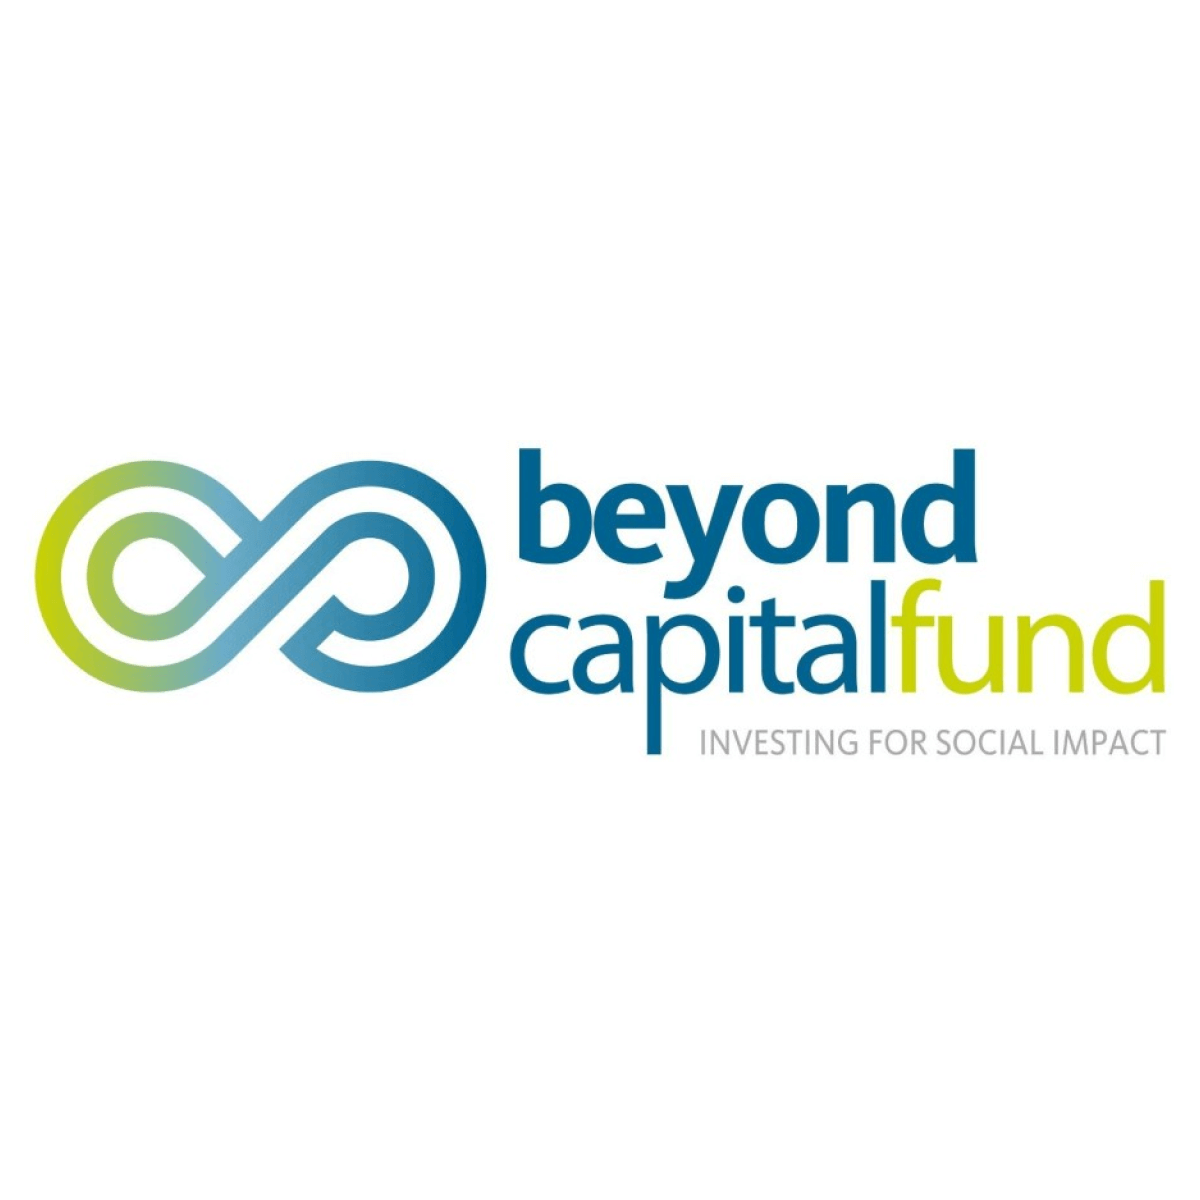 Beyond Capital Fund Beyond Capital Fund